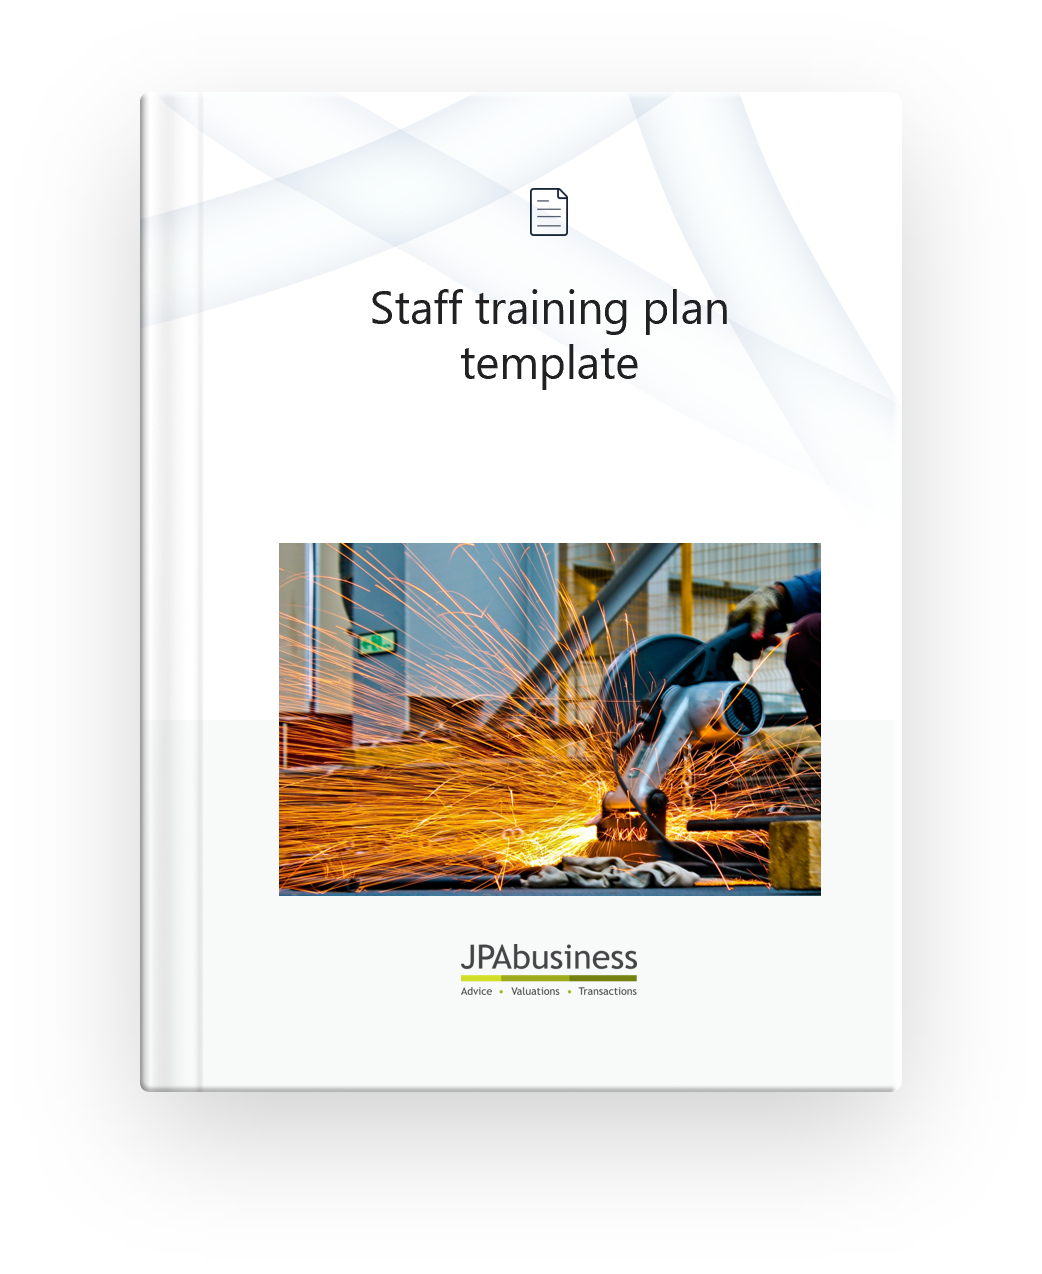 The_Staff_Training_Plan